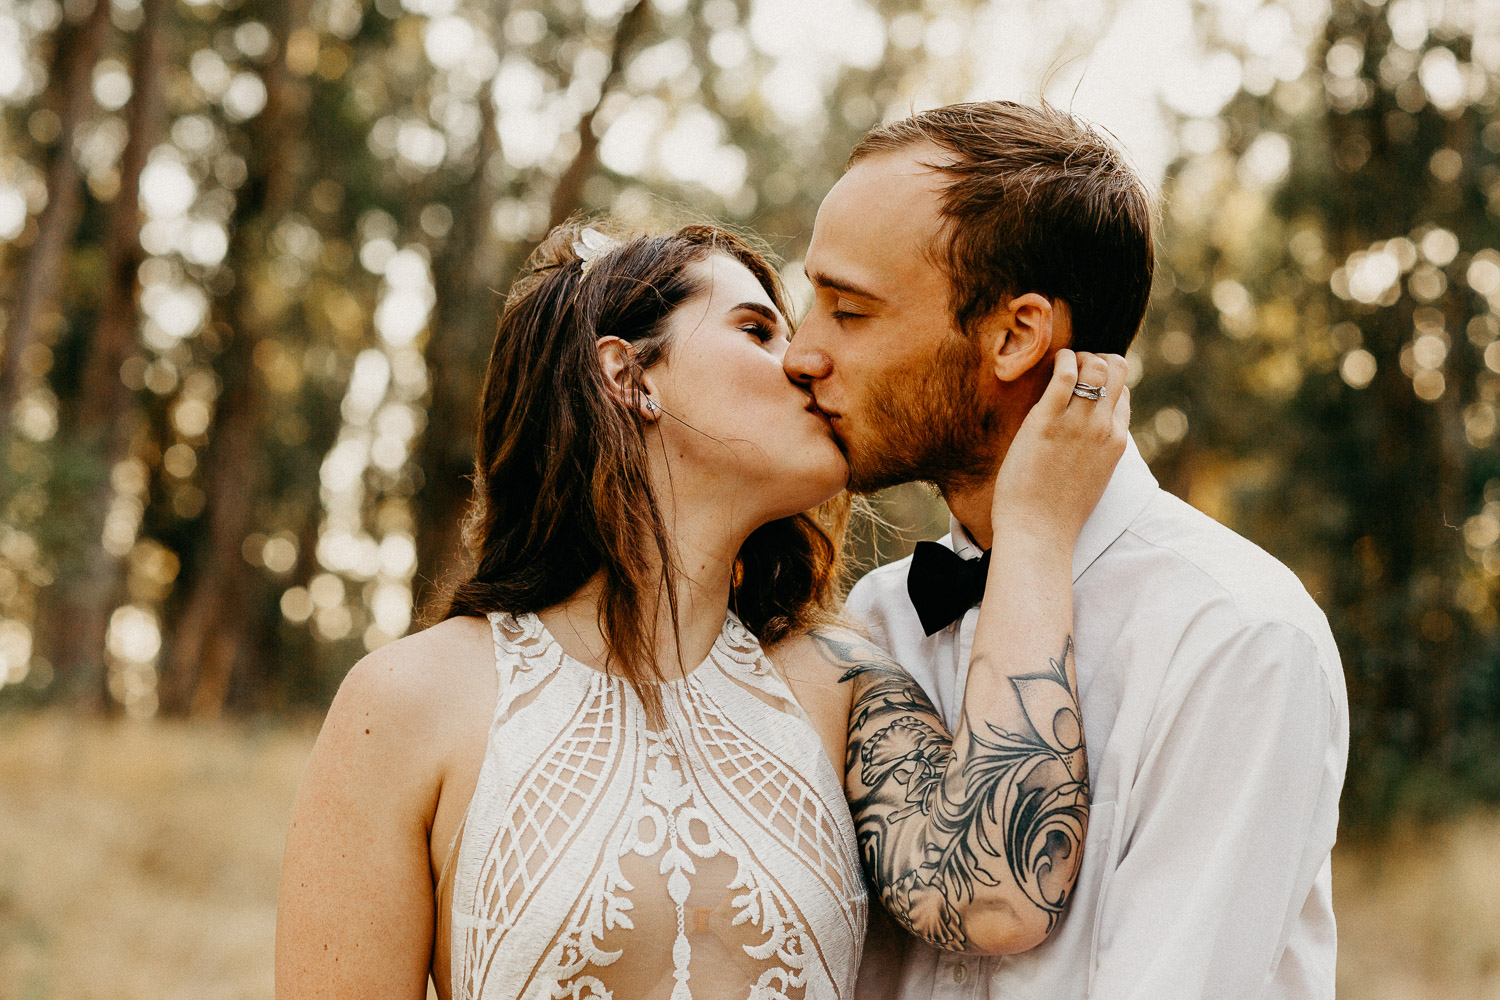 Image of bride and groom kiss each other